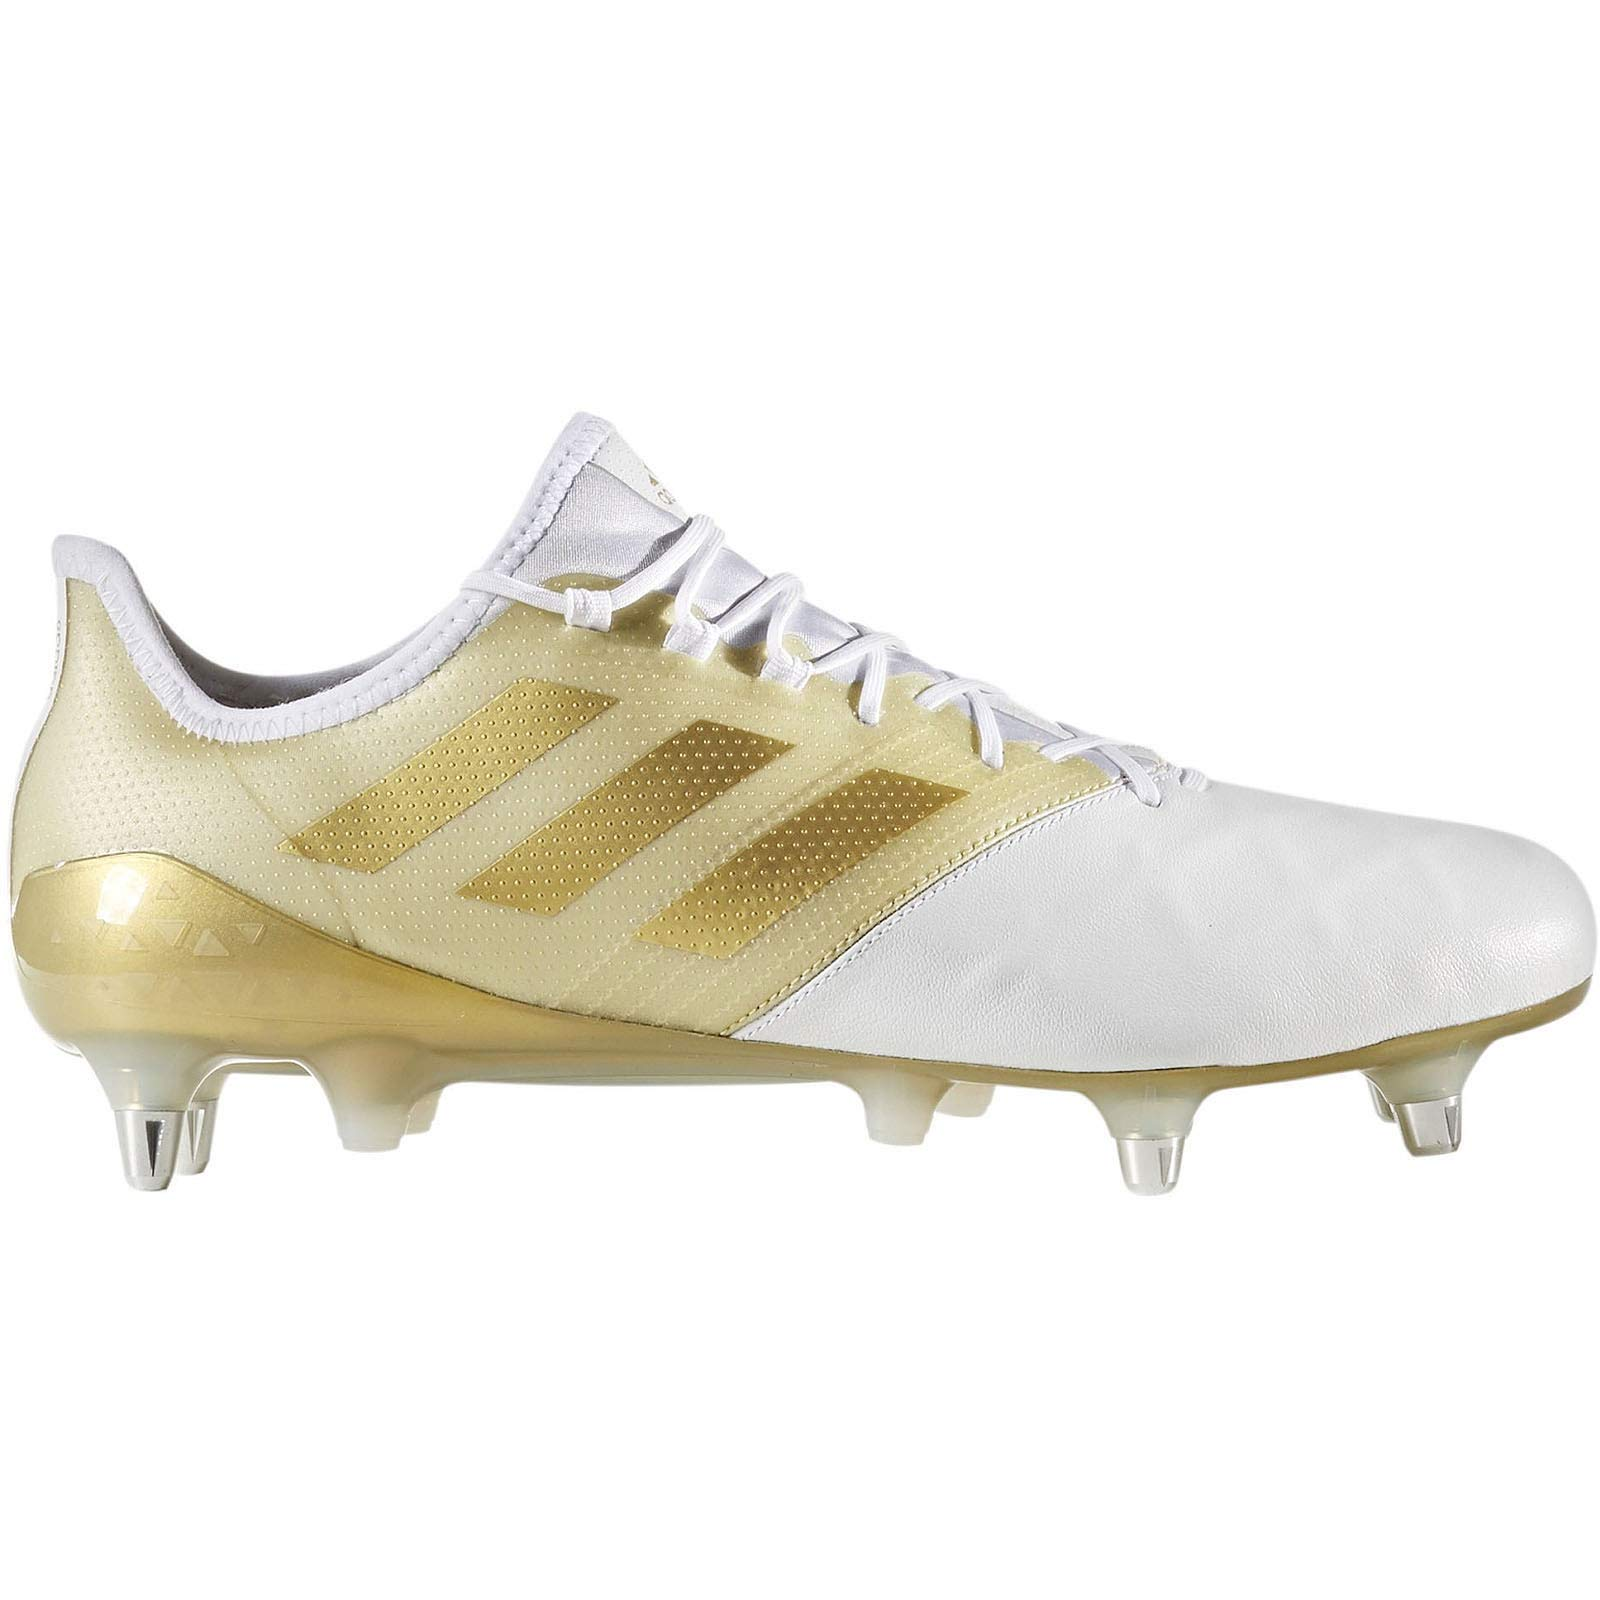 new concept bbaed 8c0de Galleon - Adidas Kakari Light SG Rugby Boots - White Gold - UK 13